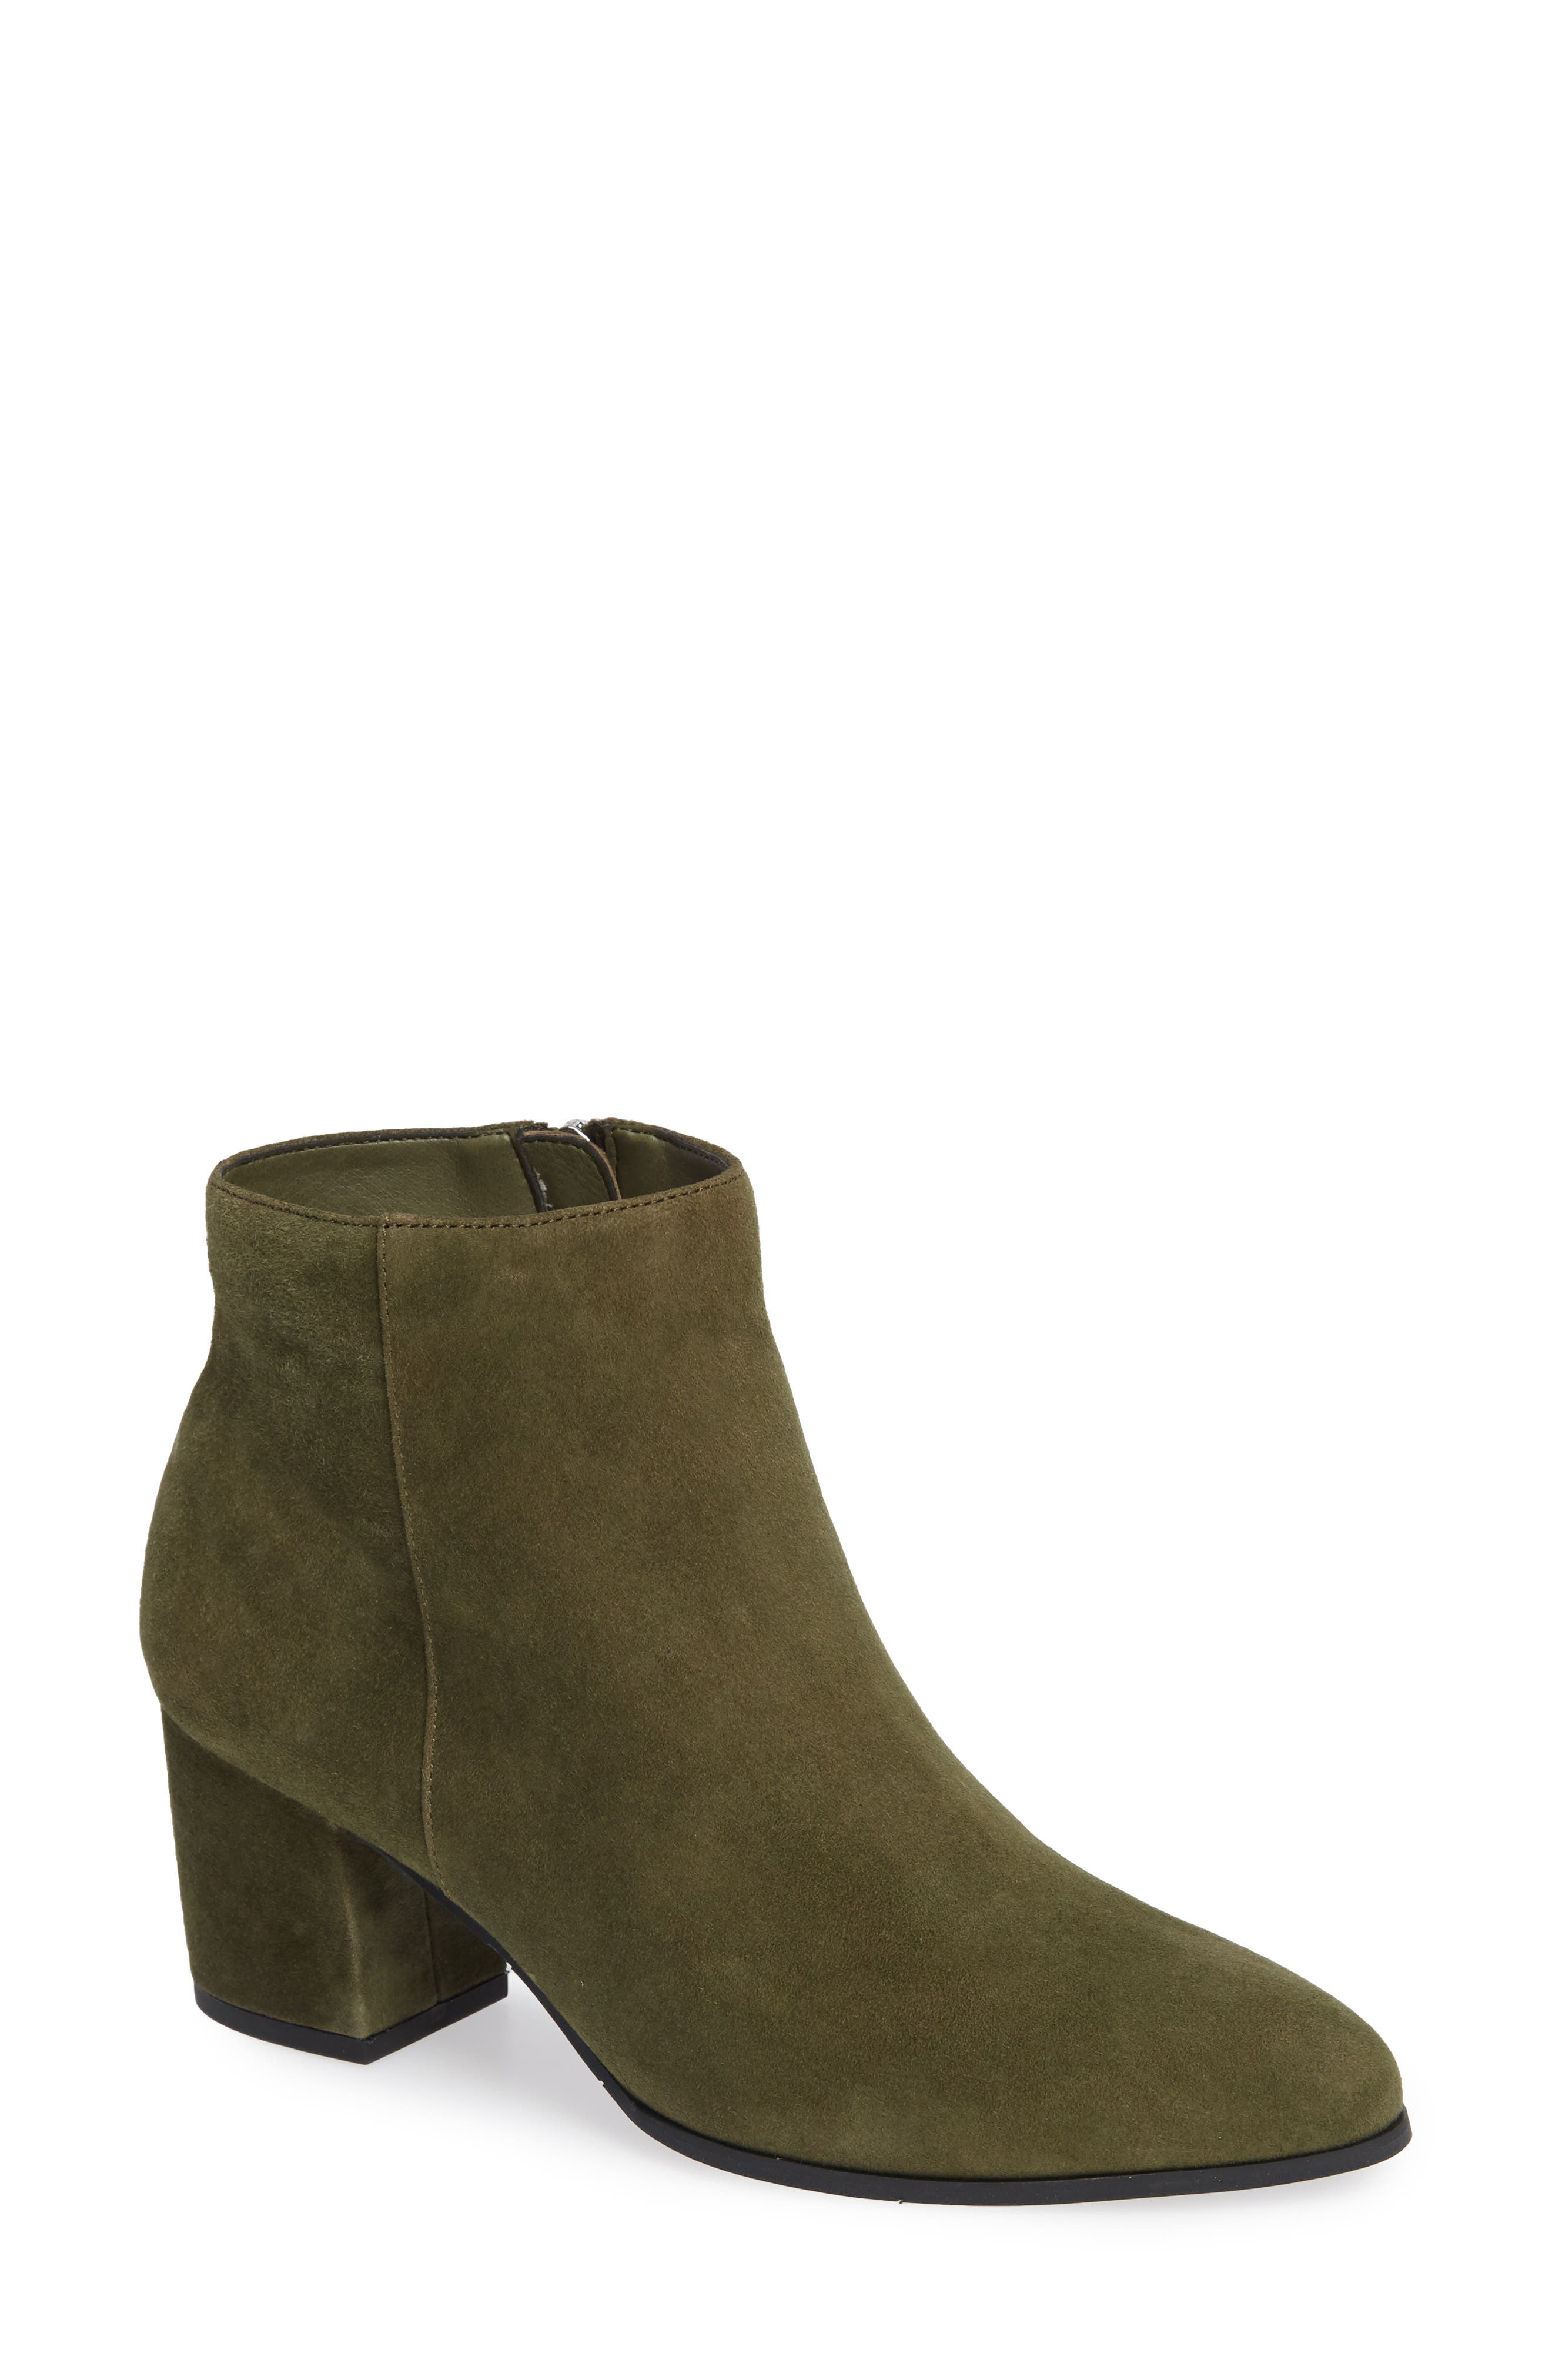 Amorie Bootie, Main, color, MOSS SUEDE